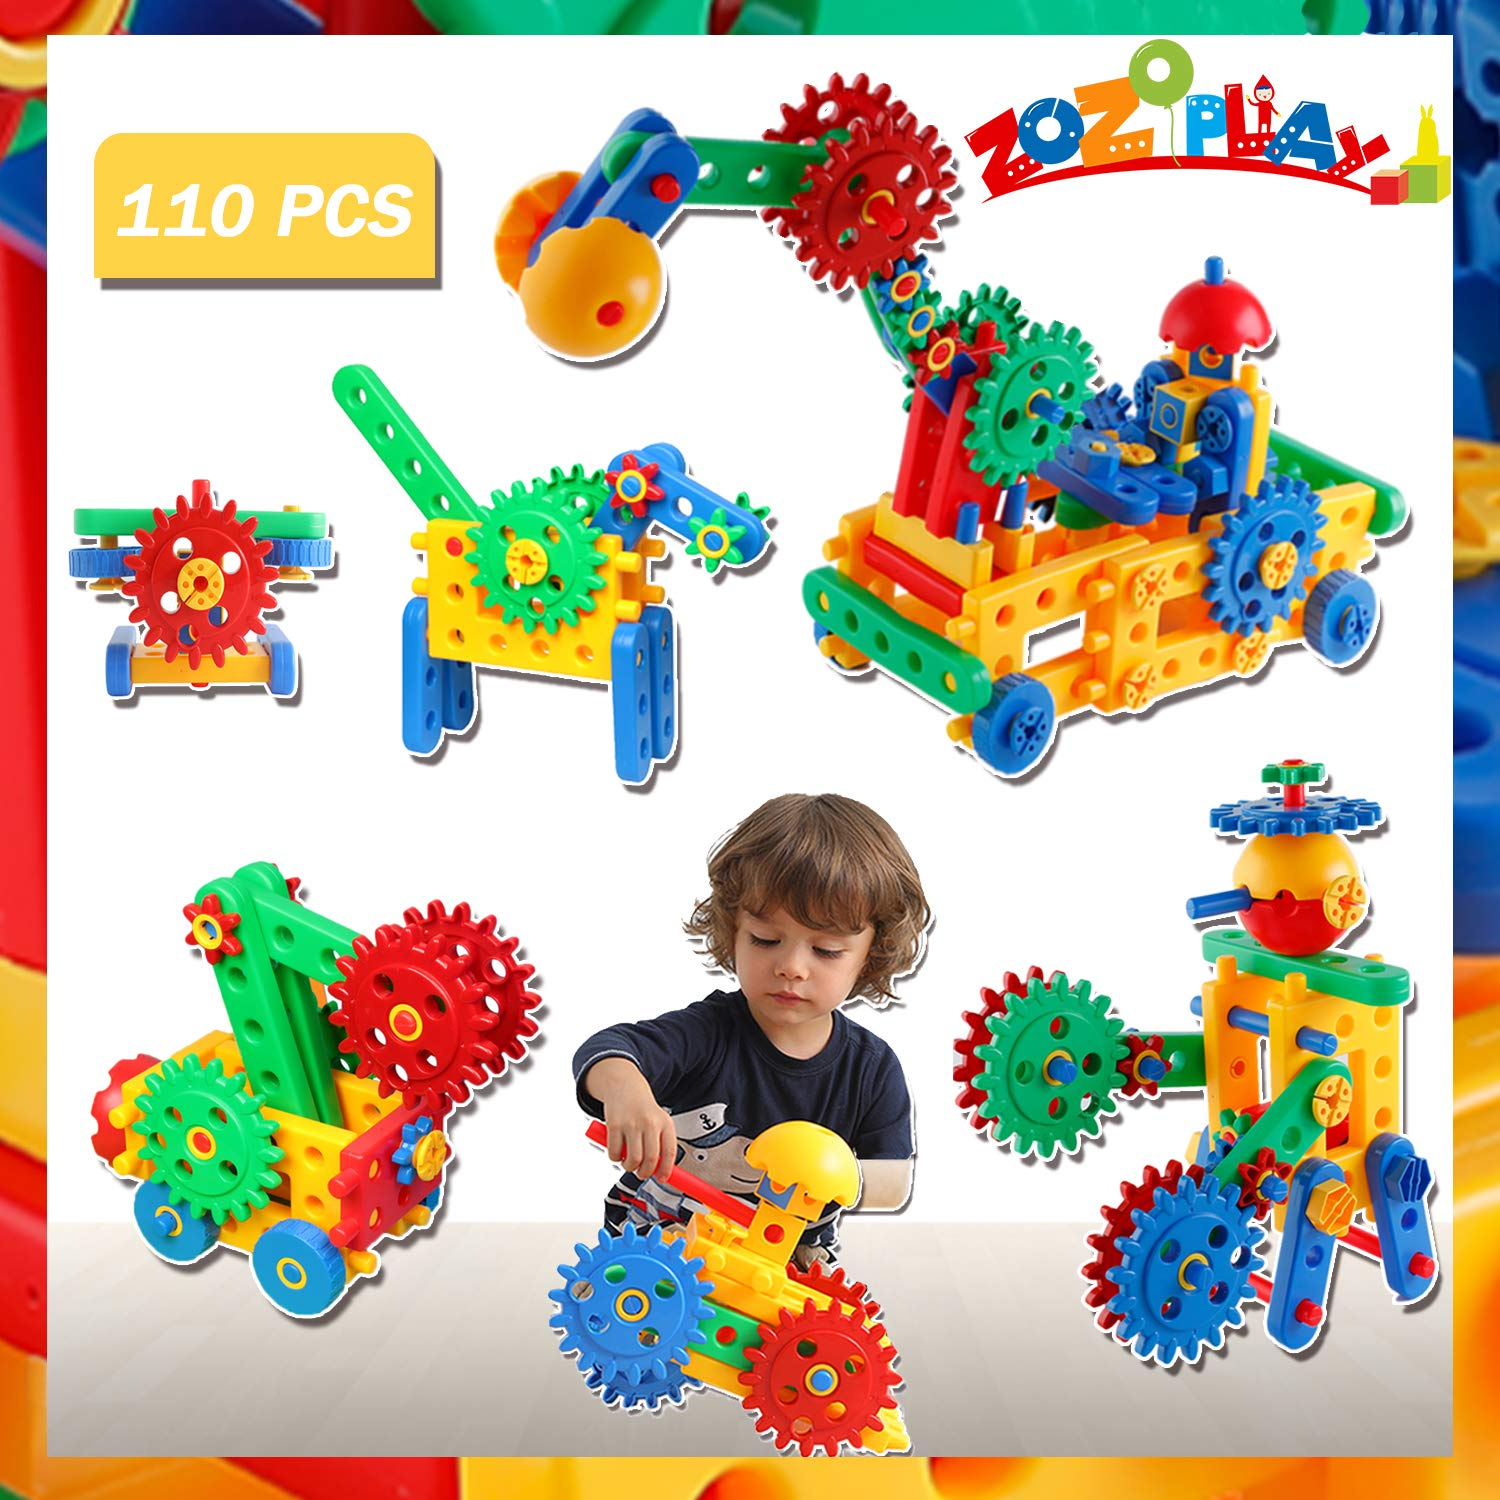 ZoZoplay STEM Toys 110 Piece Gear Toys Building Set for Kids, Learning Educational Engineering Construction Blocks, Build Excavator Horse & Buggy, Stem Toys for 3 4 5 6 7 Year Old Boys Girls